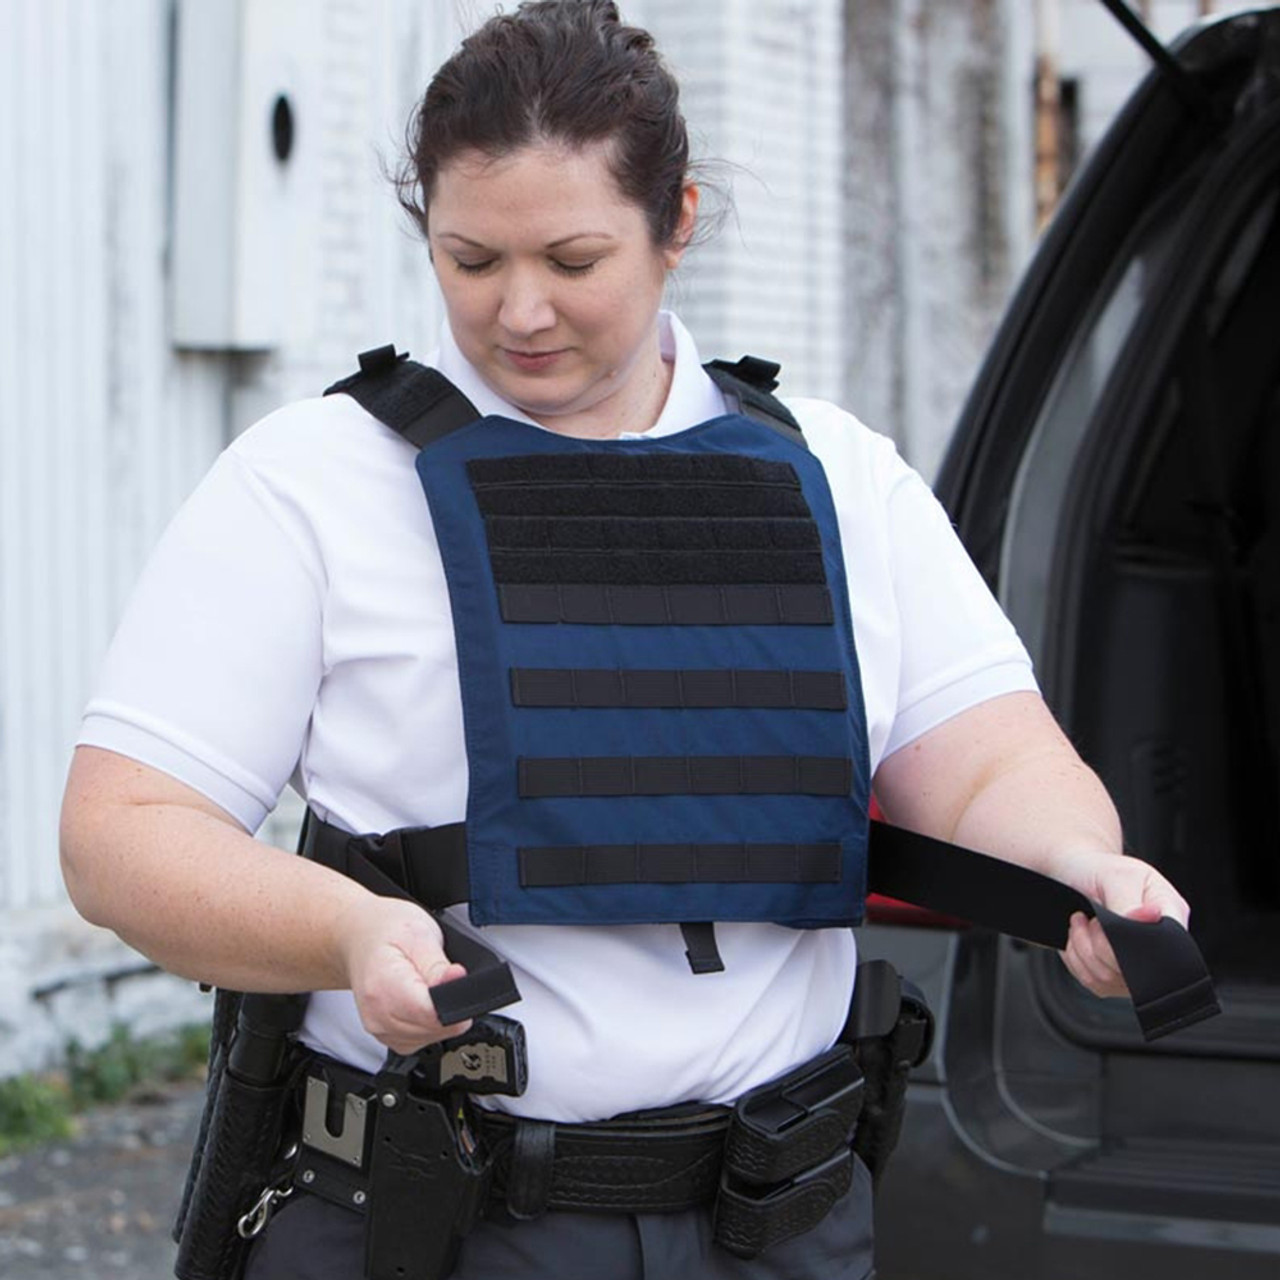 Propper CRITICAL RESPONSE® KIT, black, one-size-fits-all, includes Level 4 Ballistic Plates (front and back), Overt Carrier, Bag, & Placards, In Stock